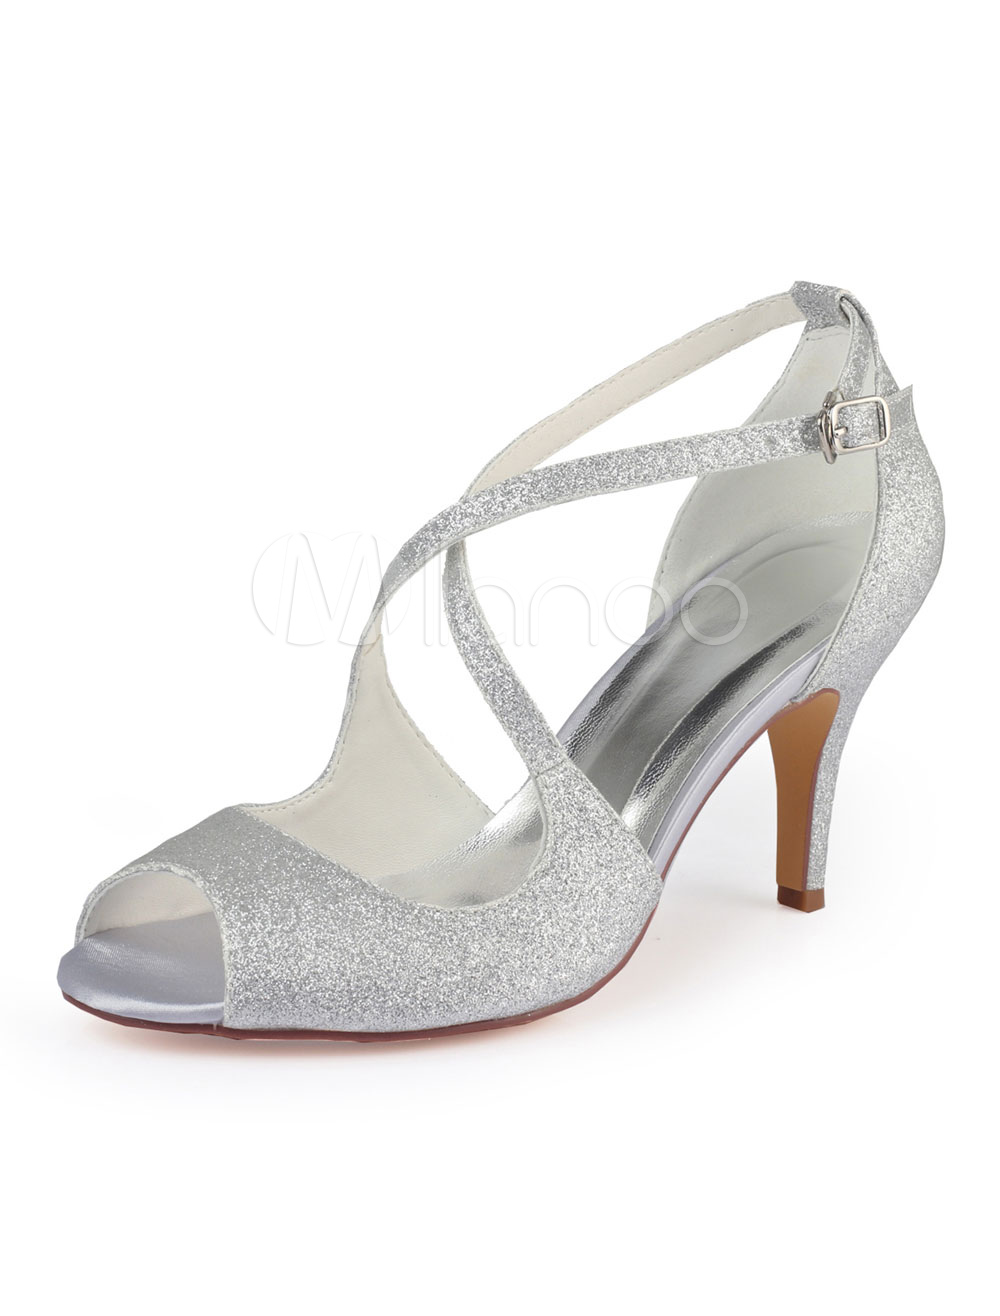 Silver Wedding Shoes.Silver Wedding Shoes Glitter Open Toe Criss Cross Prom Shoes High Heel Party Shoes